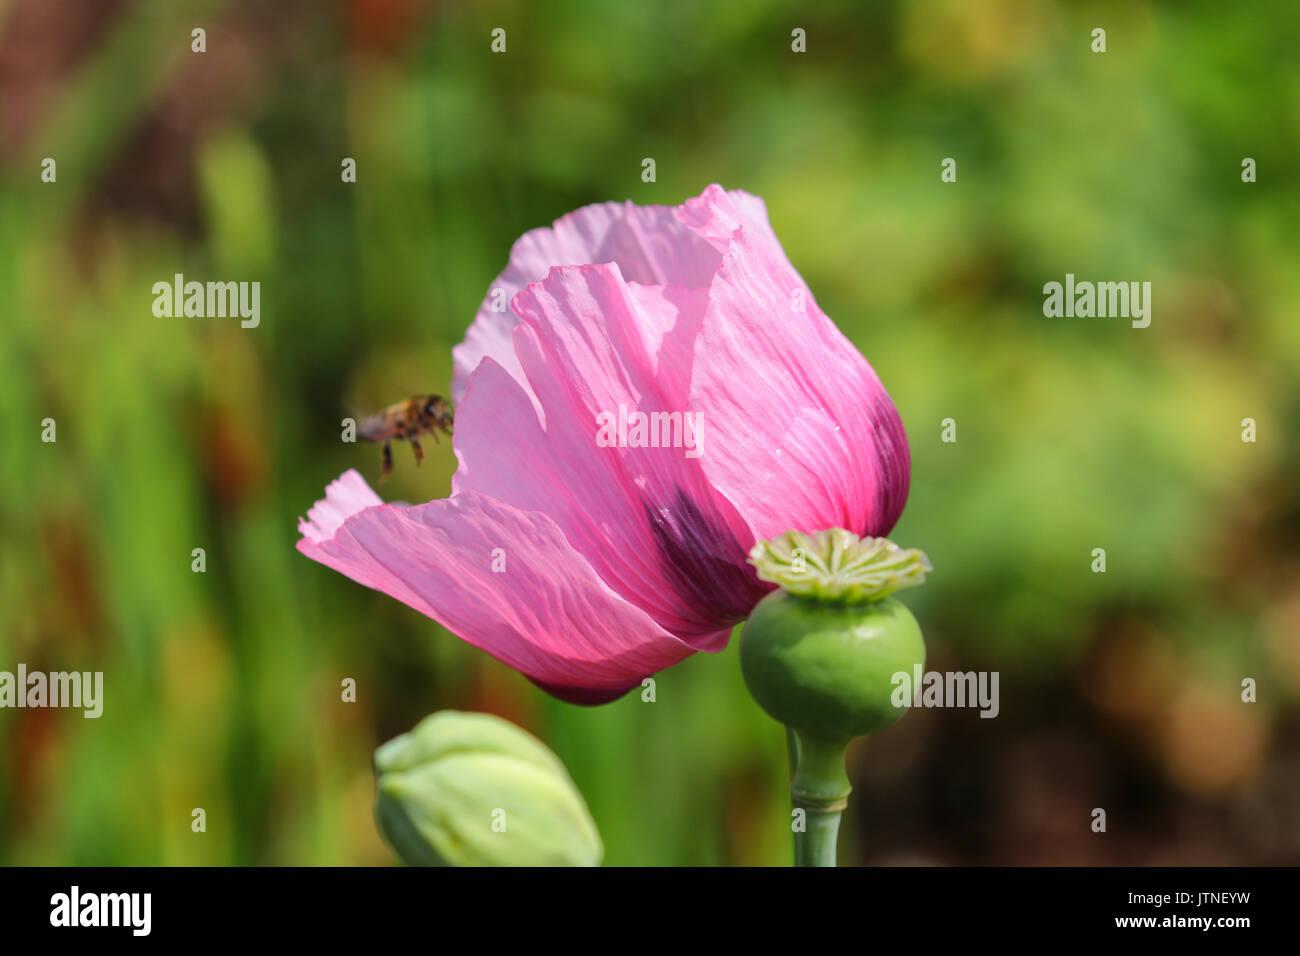 Pink Poppy Flower Stock Photos Pink Poppy Flower Stock Images Alamy